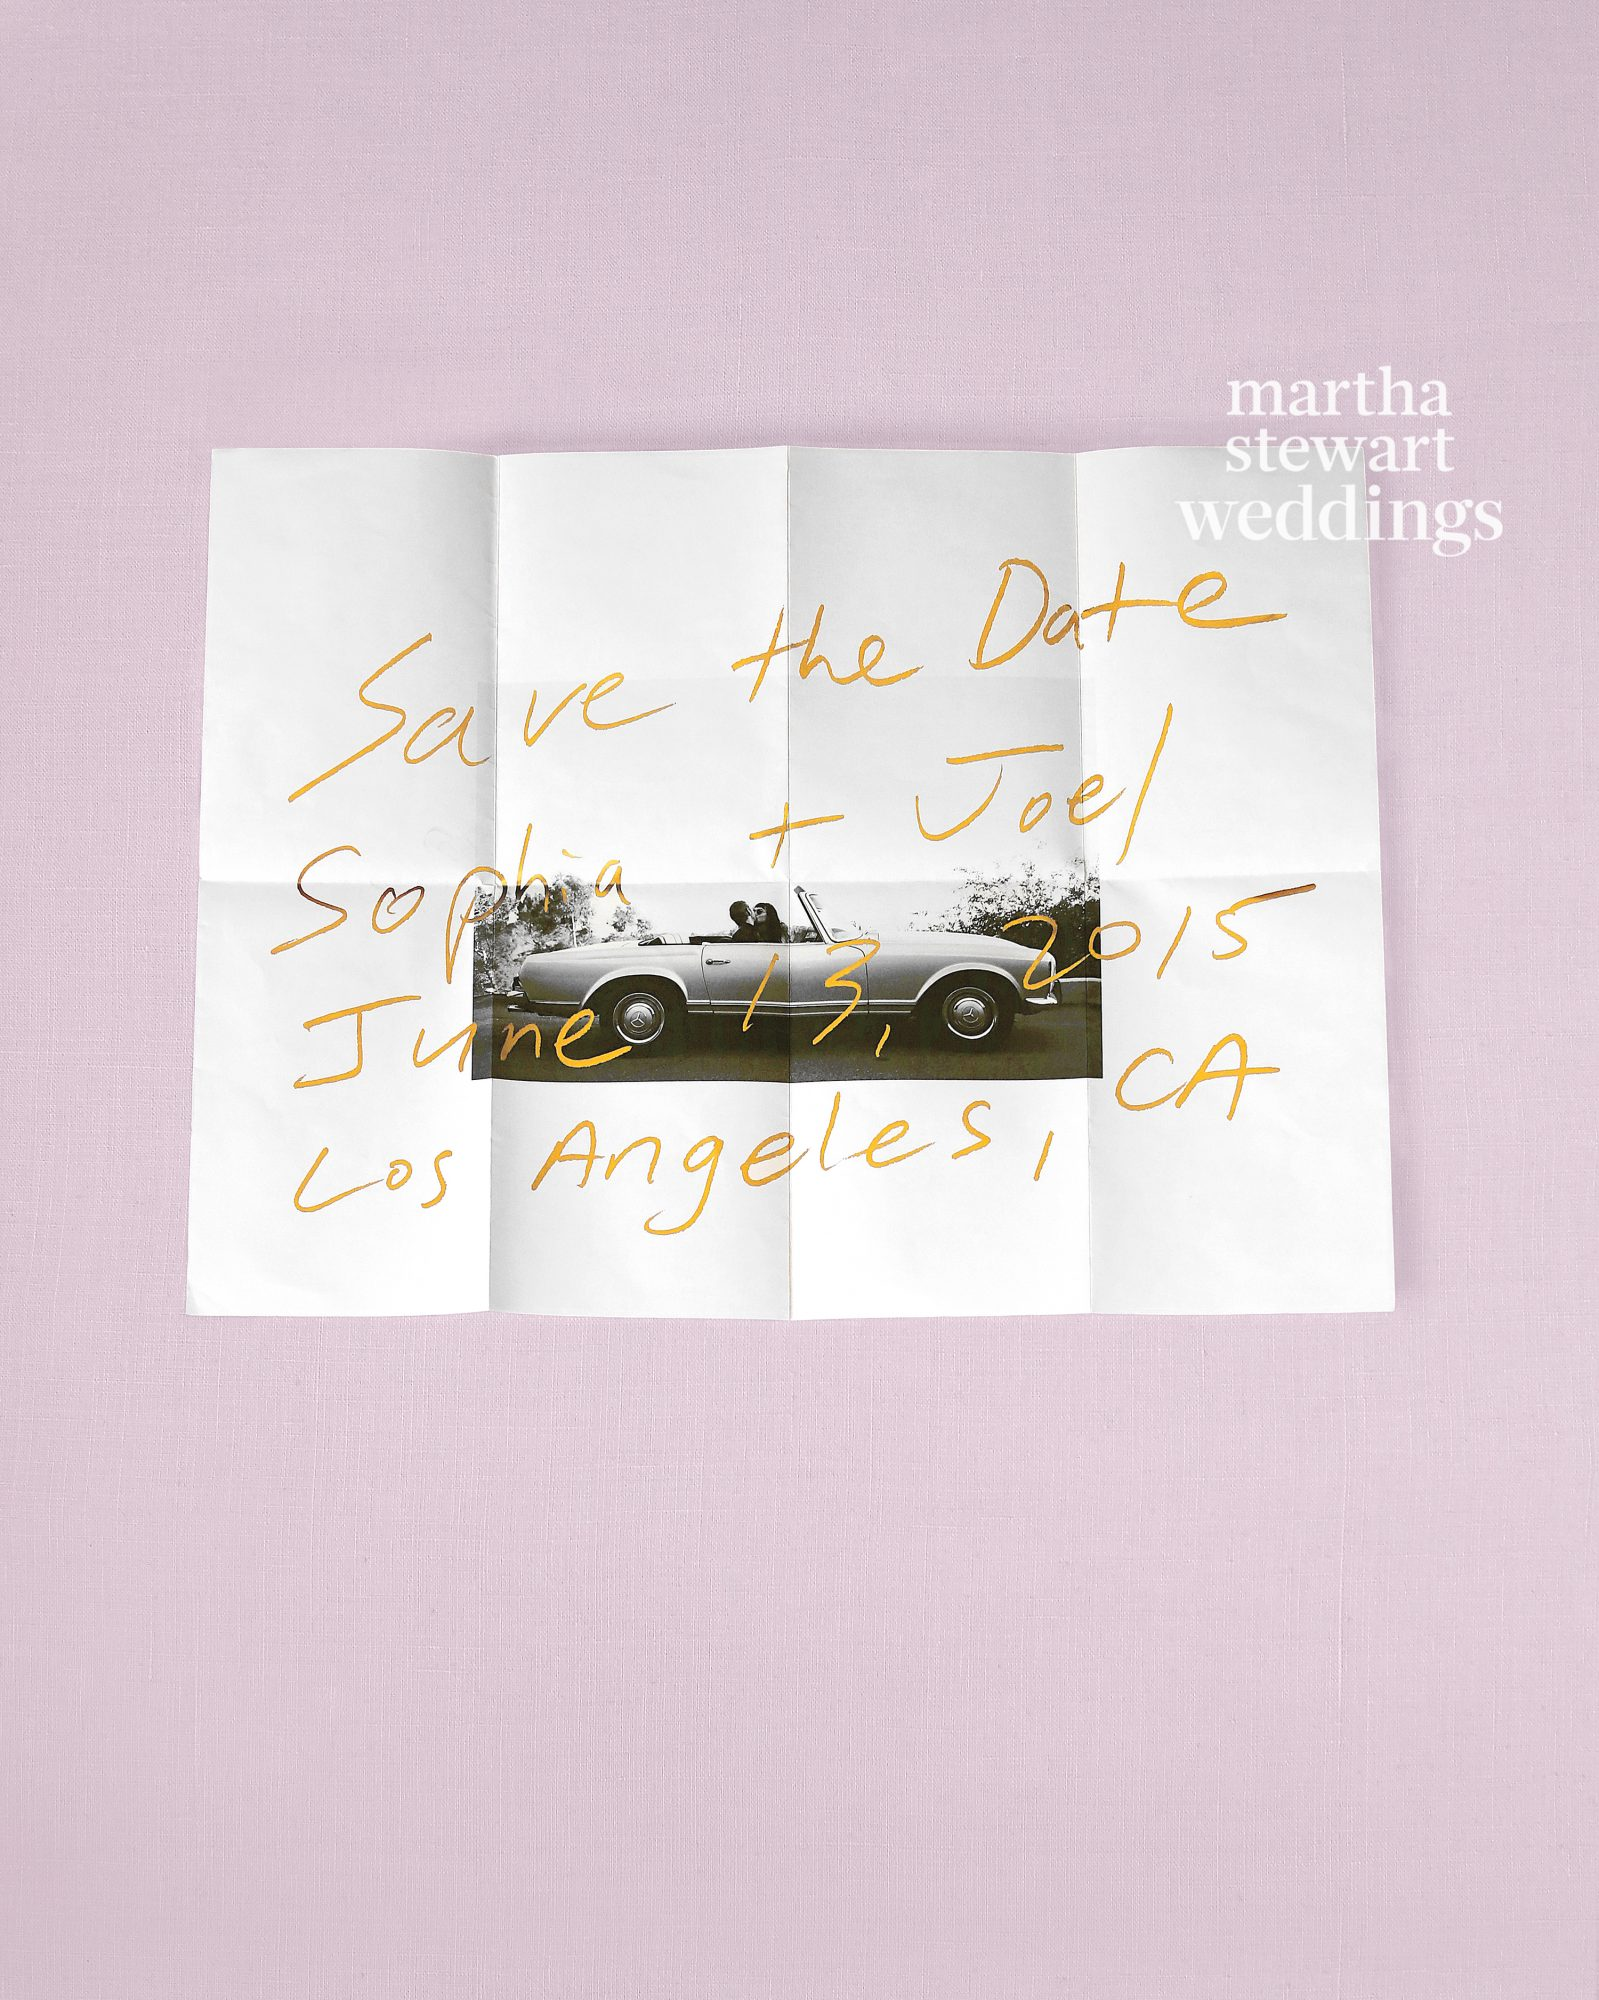 msophia-joel-wedding-los-angeles-save-the-date-d112240-r1-watermarked-0915.jpg